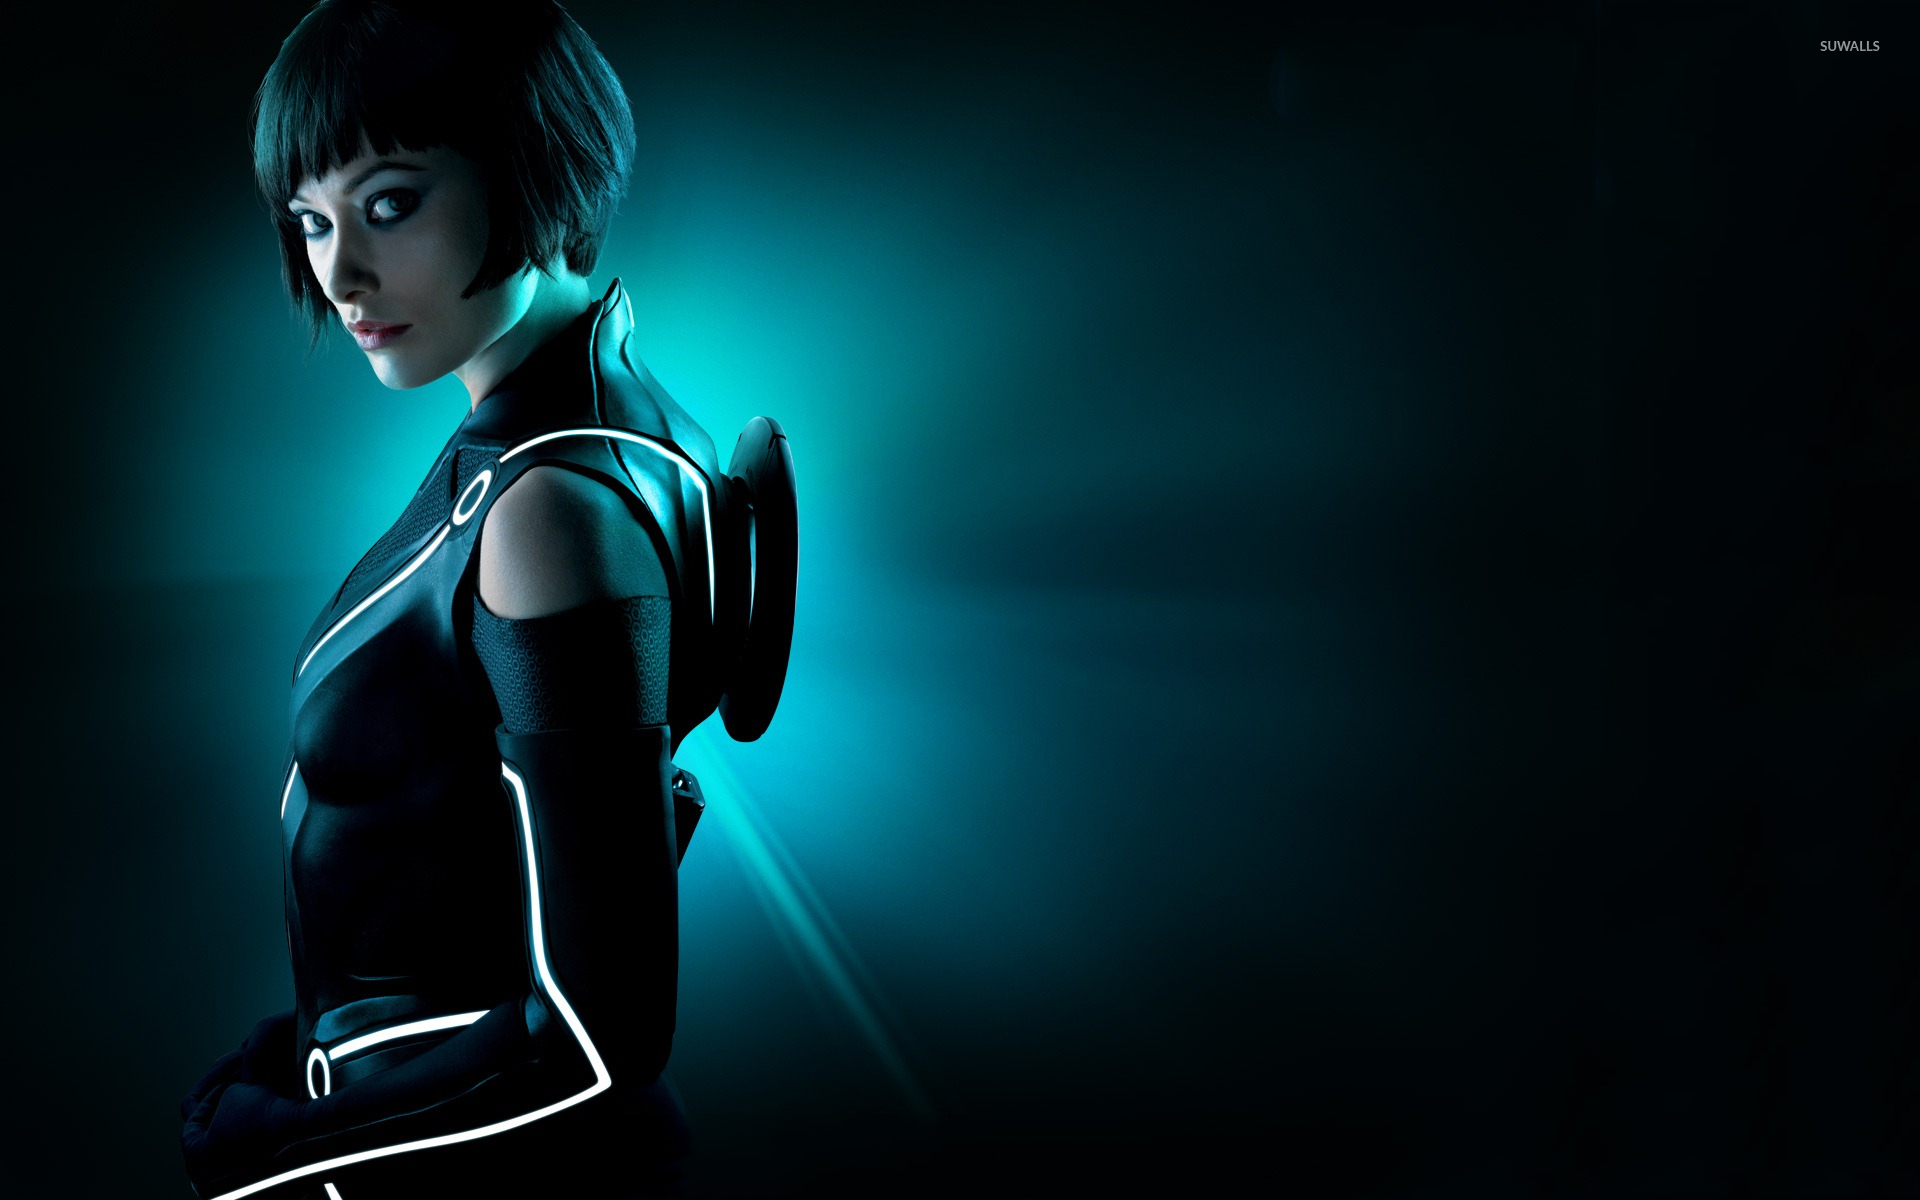 tron: legacy wallpaper - movie wallpapers - #2074